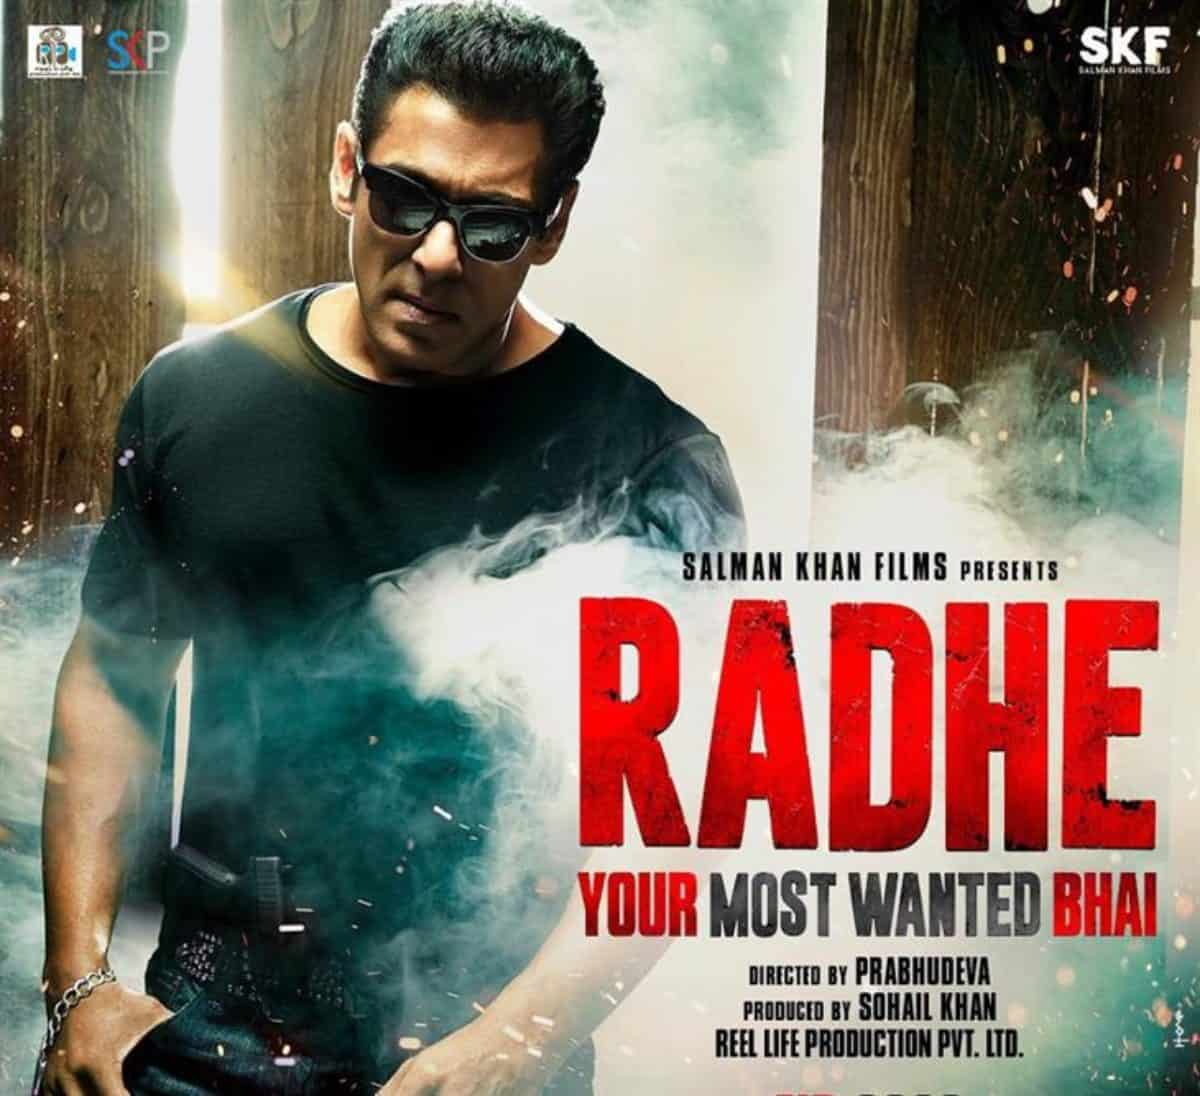 Salman Khan's Radhe revenue to be used for COVID relief!